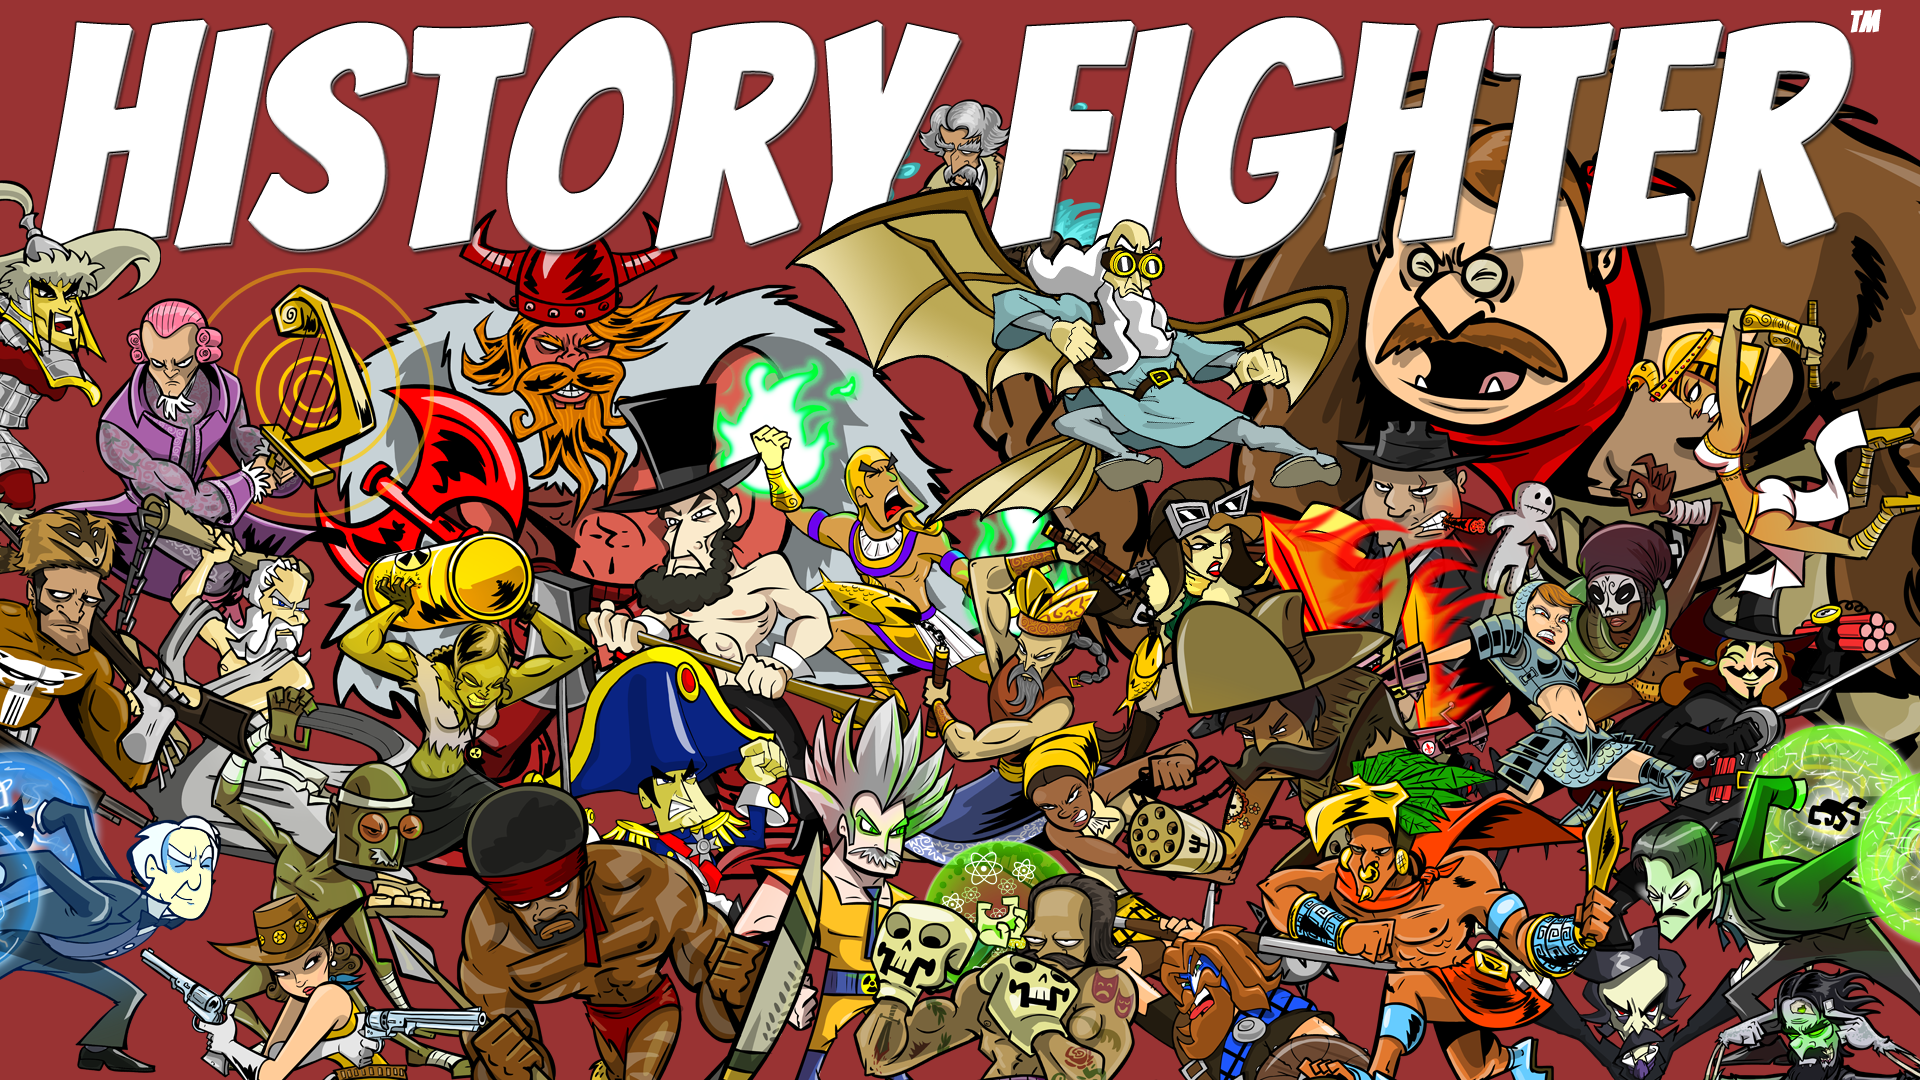 Coming Soon History Fighter By Headrush Games And Ice Cap